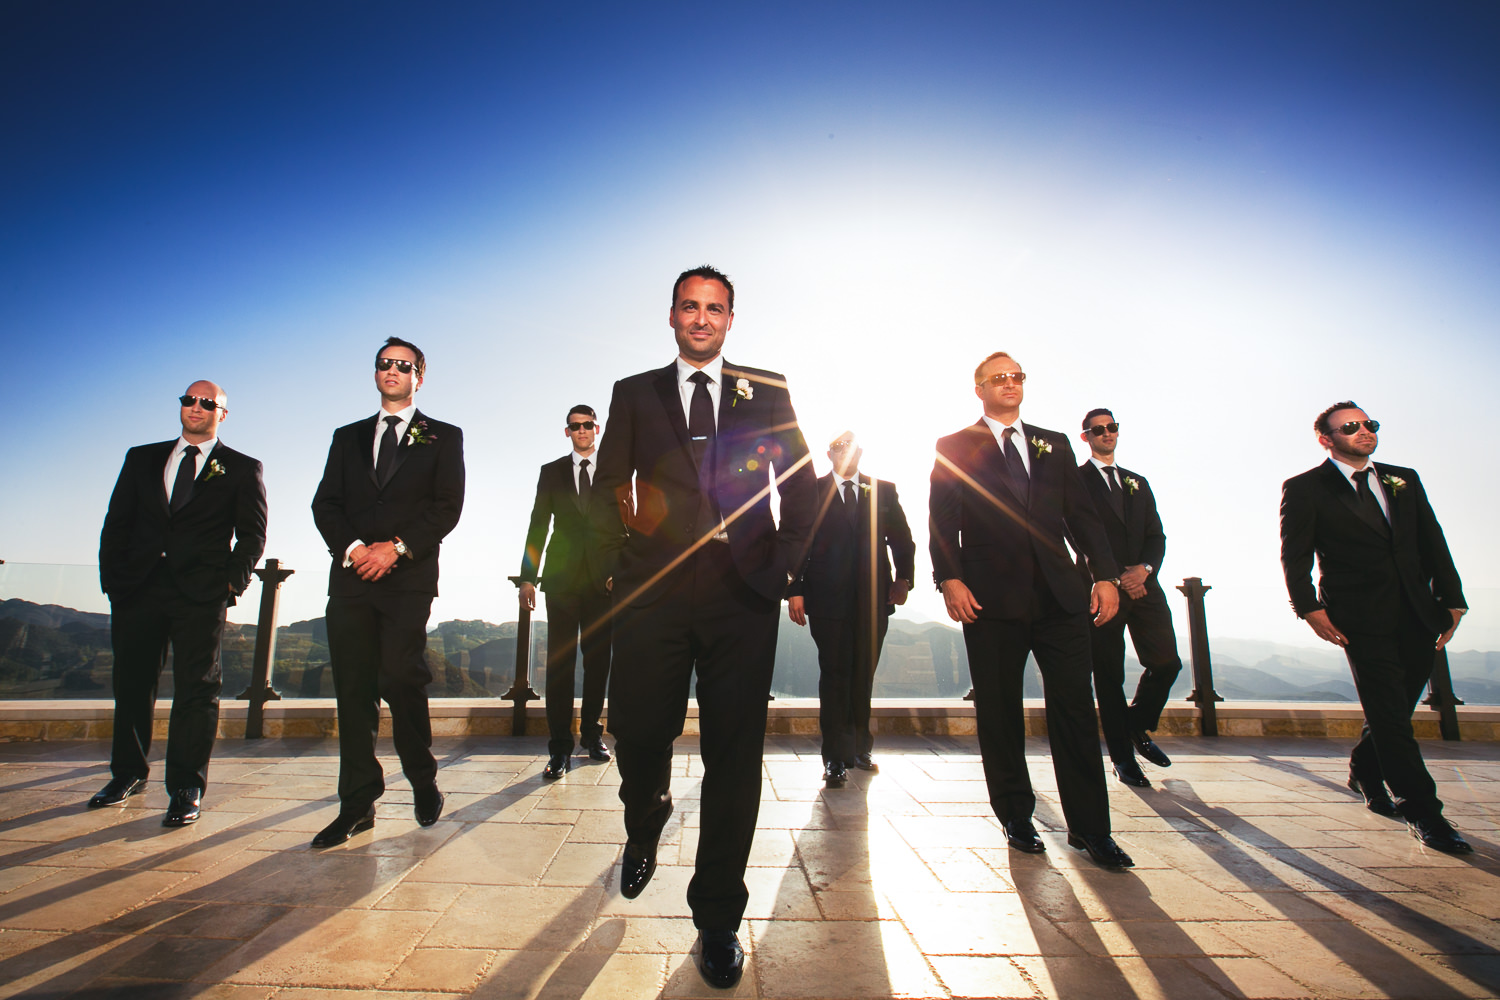 Malibu Rocky Oaks Photographer - Groomsmen Looking Great